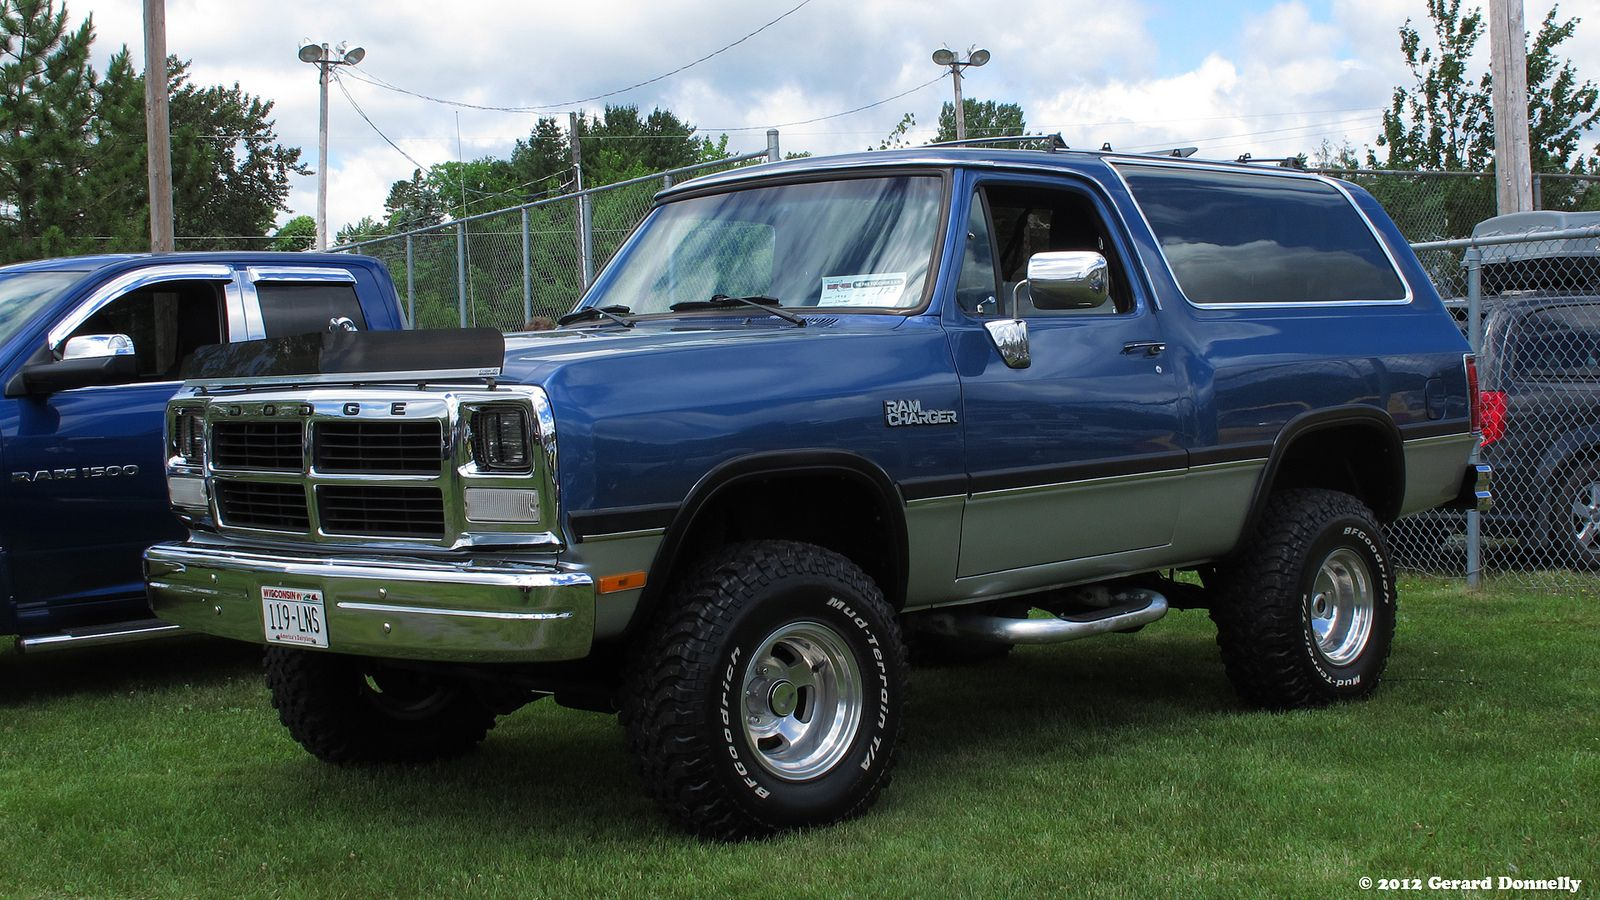 1992 dodge ram charger by gerard donnelly